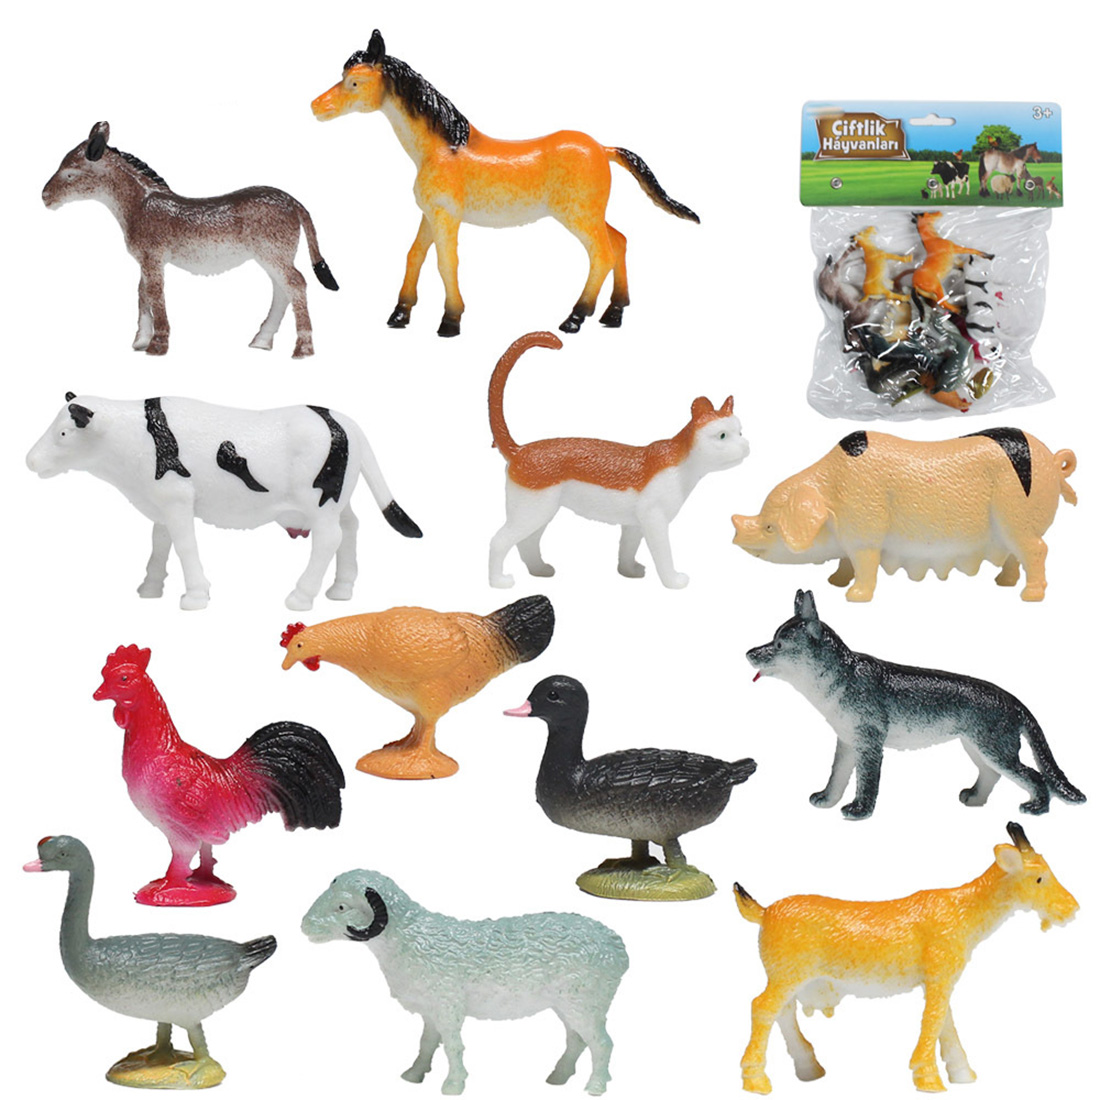 12pcs Farm Animal Model Artificial Figures Hot Set Toys For Children Plastic Simulation Mini Horse Cat Dog Cow Pig Sheep Chicken